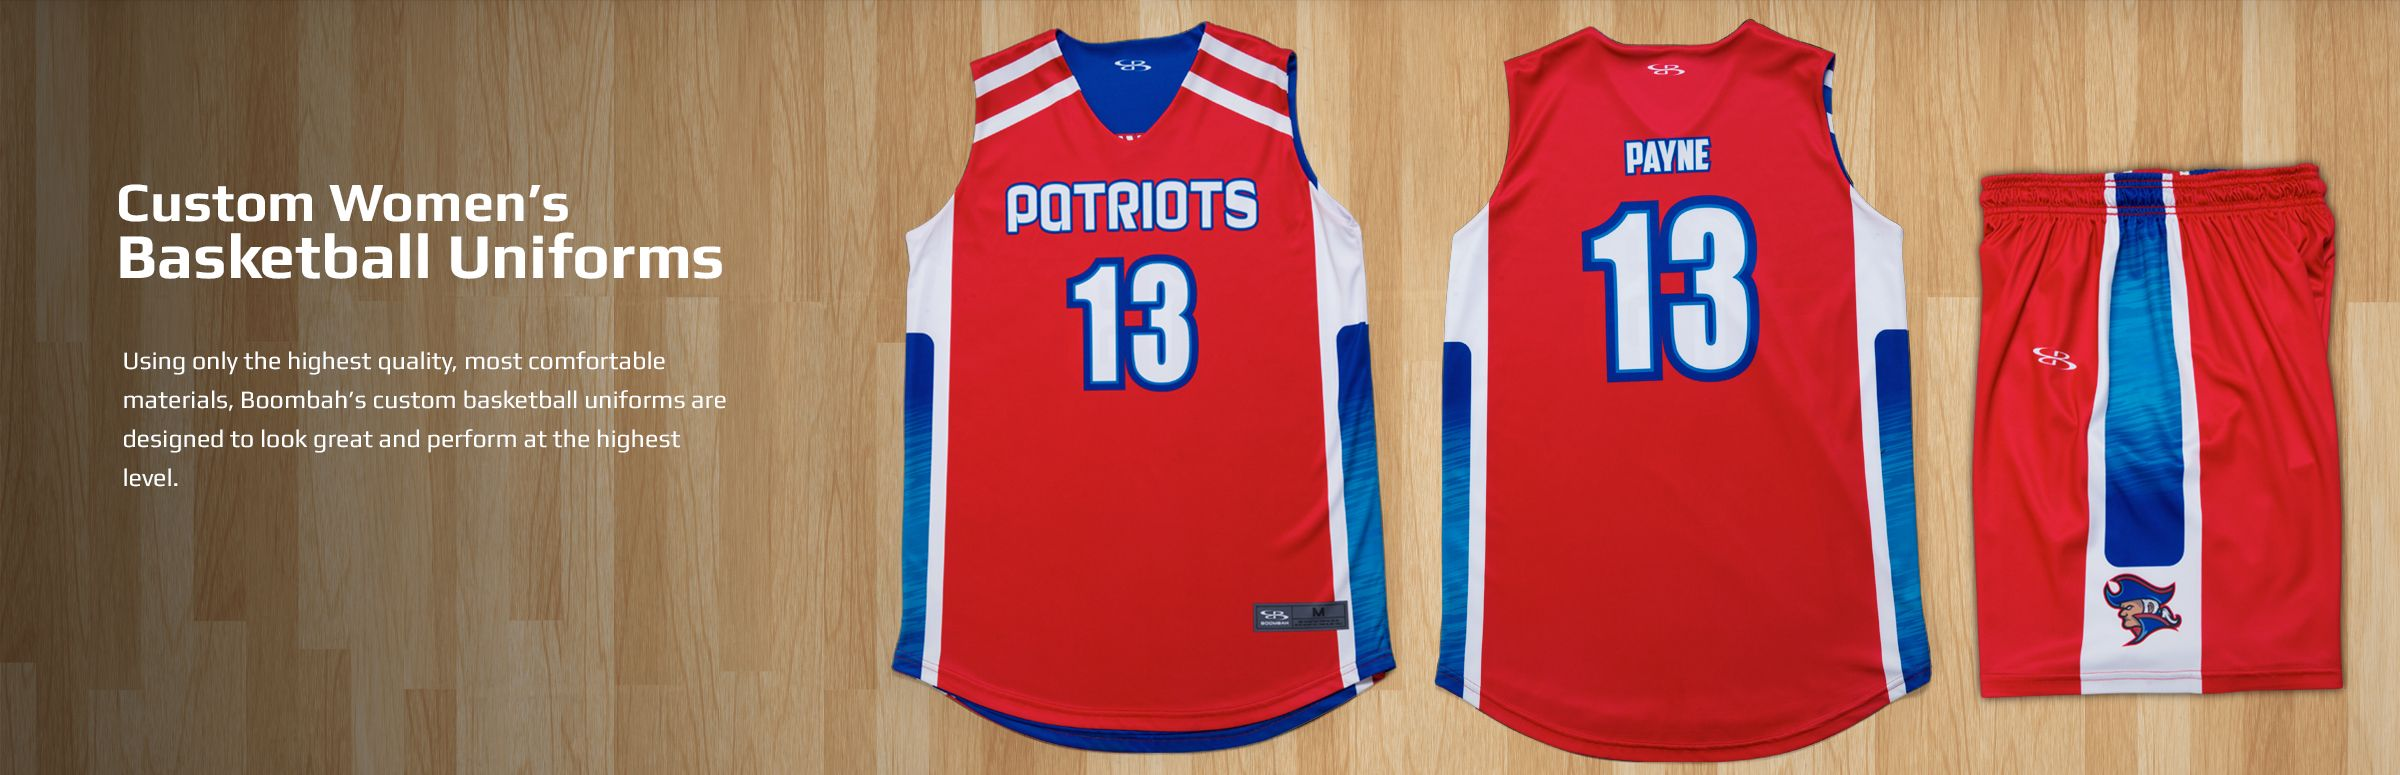 Boombah Women's Basketball Uniforms